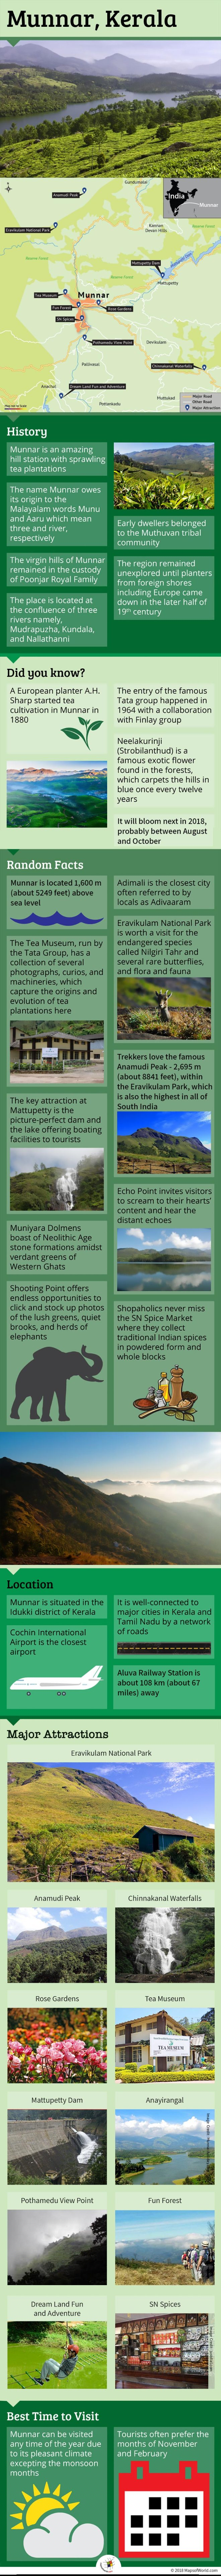 Infographic Depicting Munnar Tourist Attractions